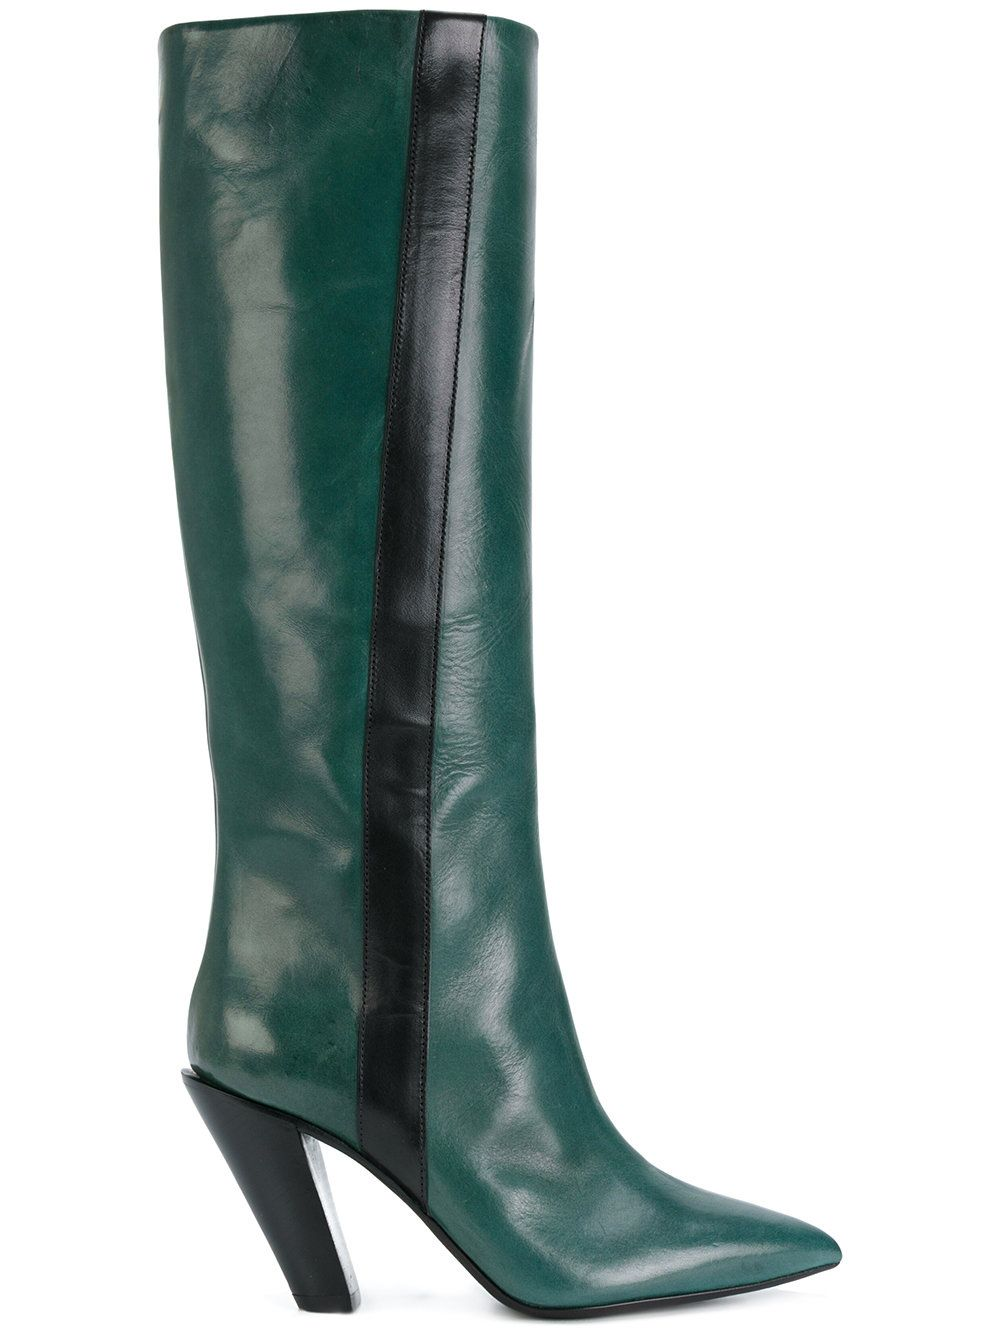 sale latest collections A.F.Vandevorst slanted heel knee-high boots clearance for sale shopping discounts online cheap visa payment B8w8N5eNL